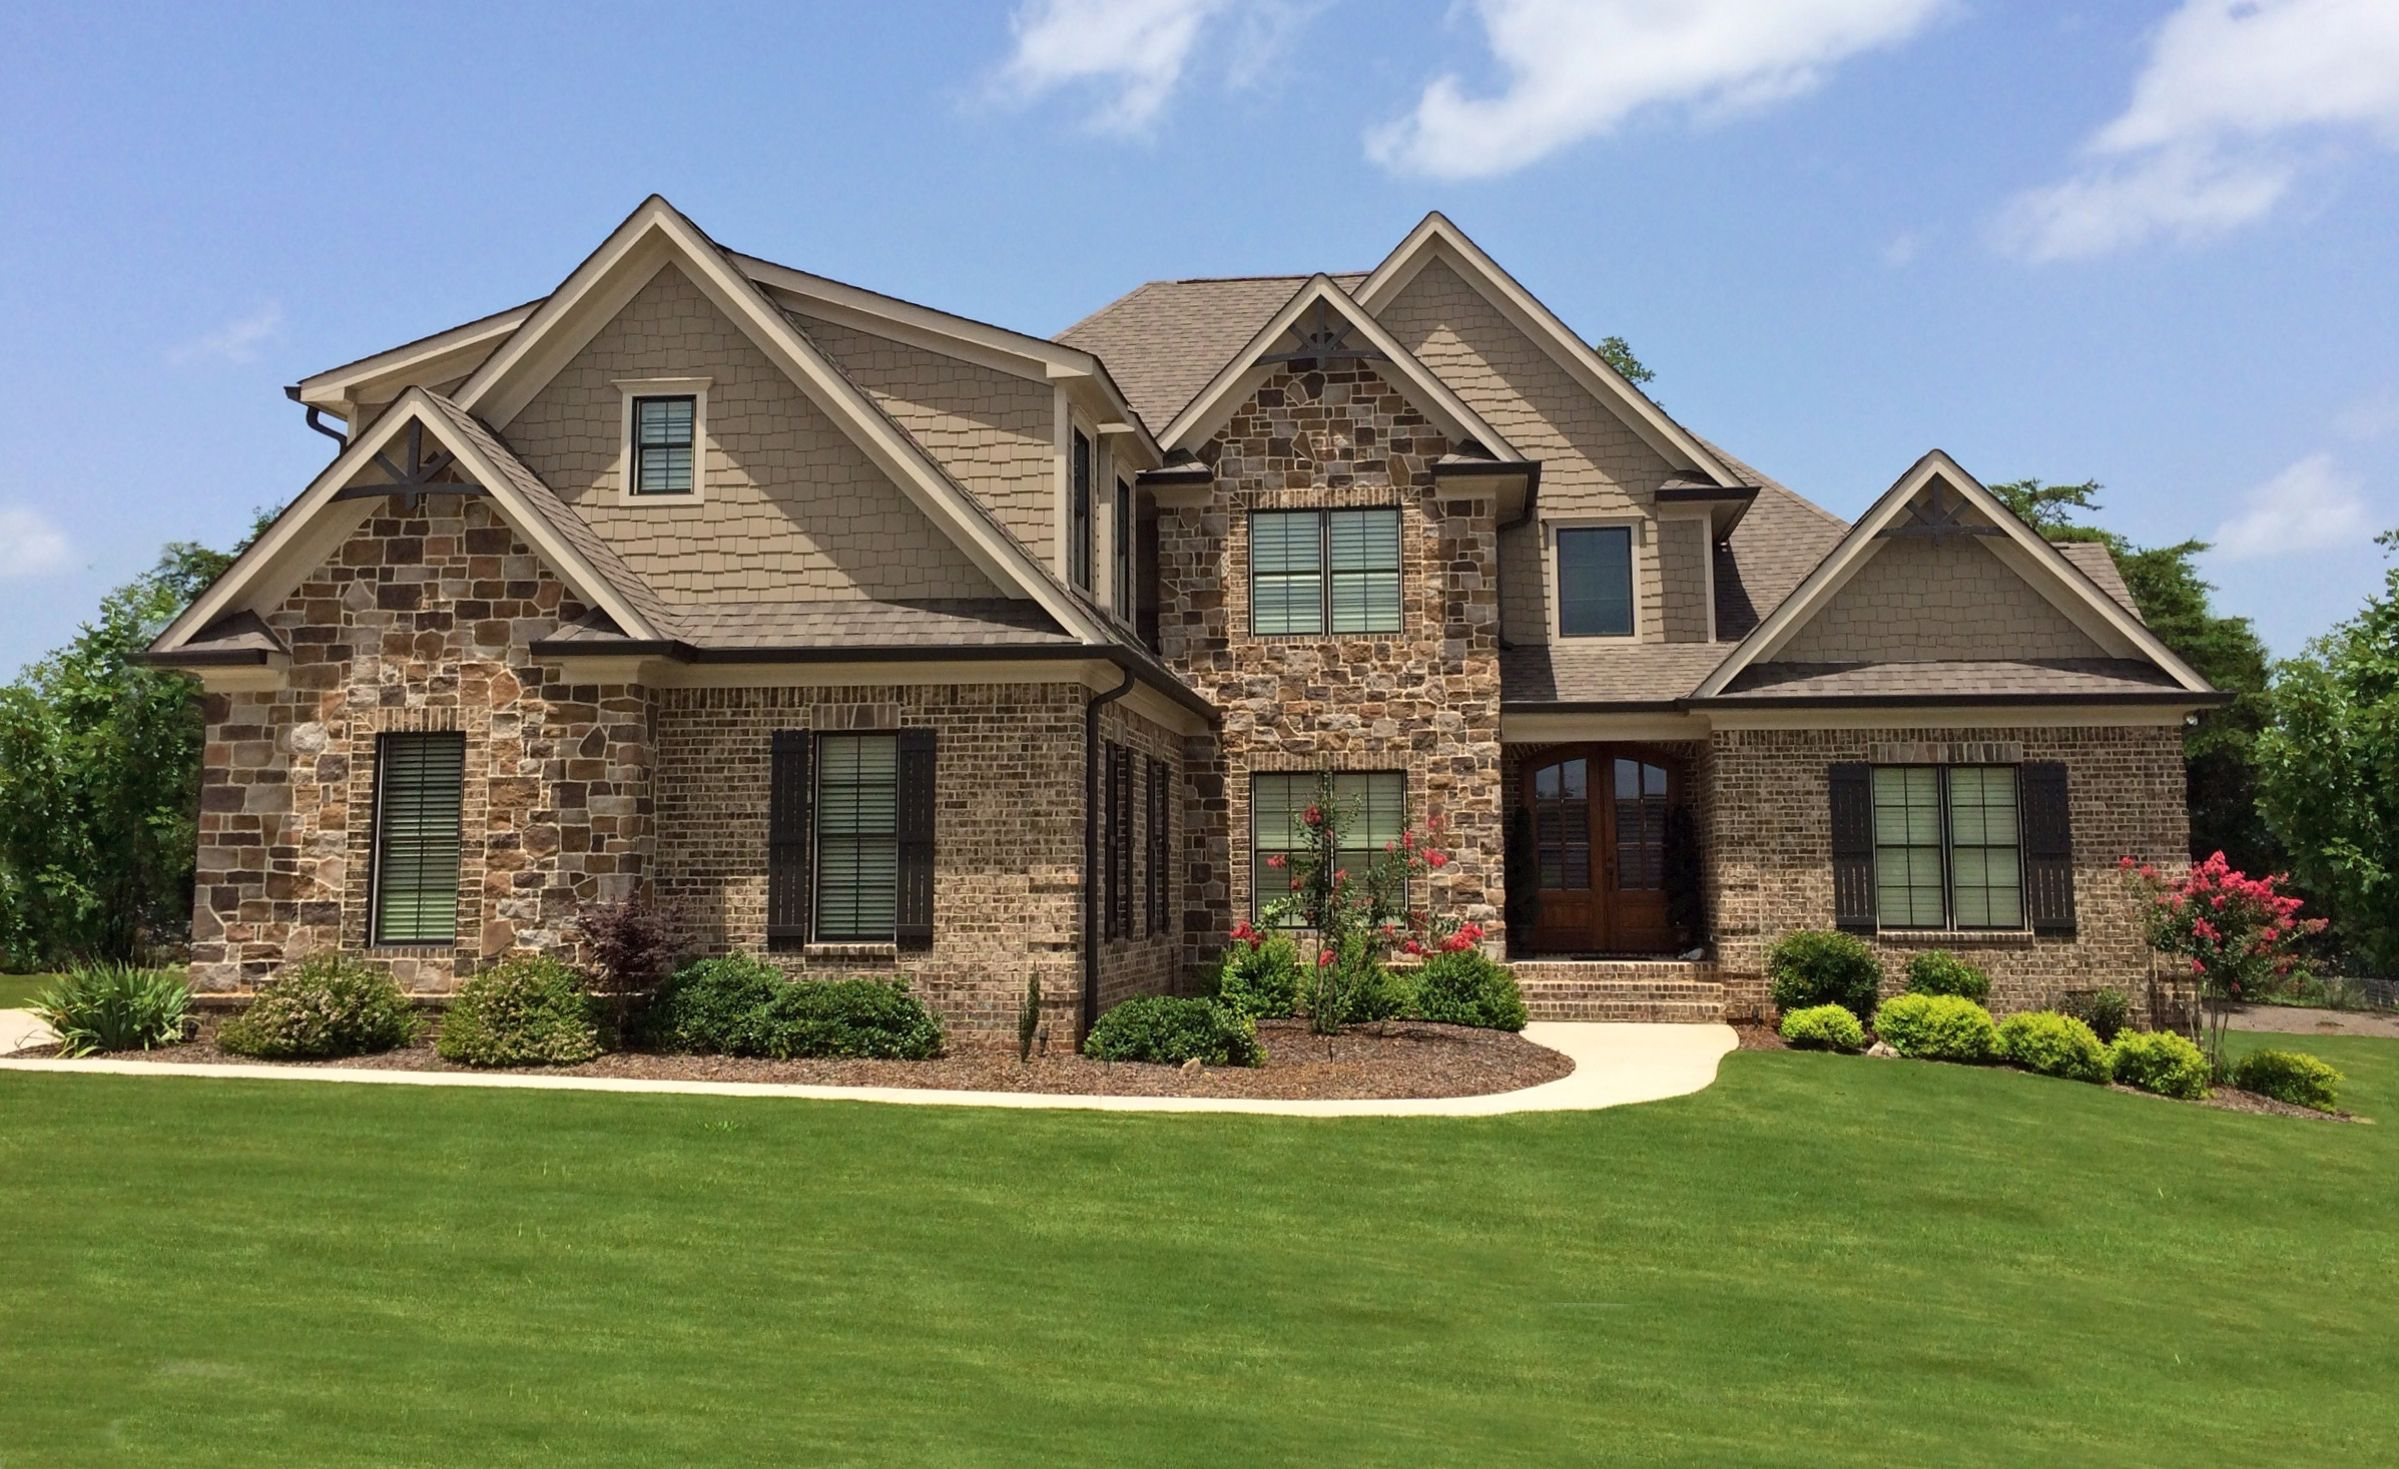 Two Story Home with Brick and Stone Exterior | Stone ...